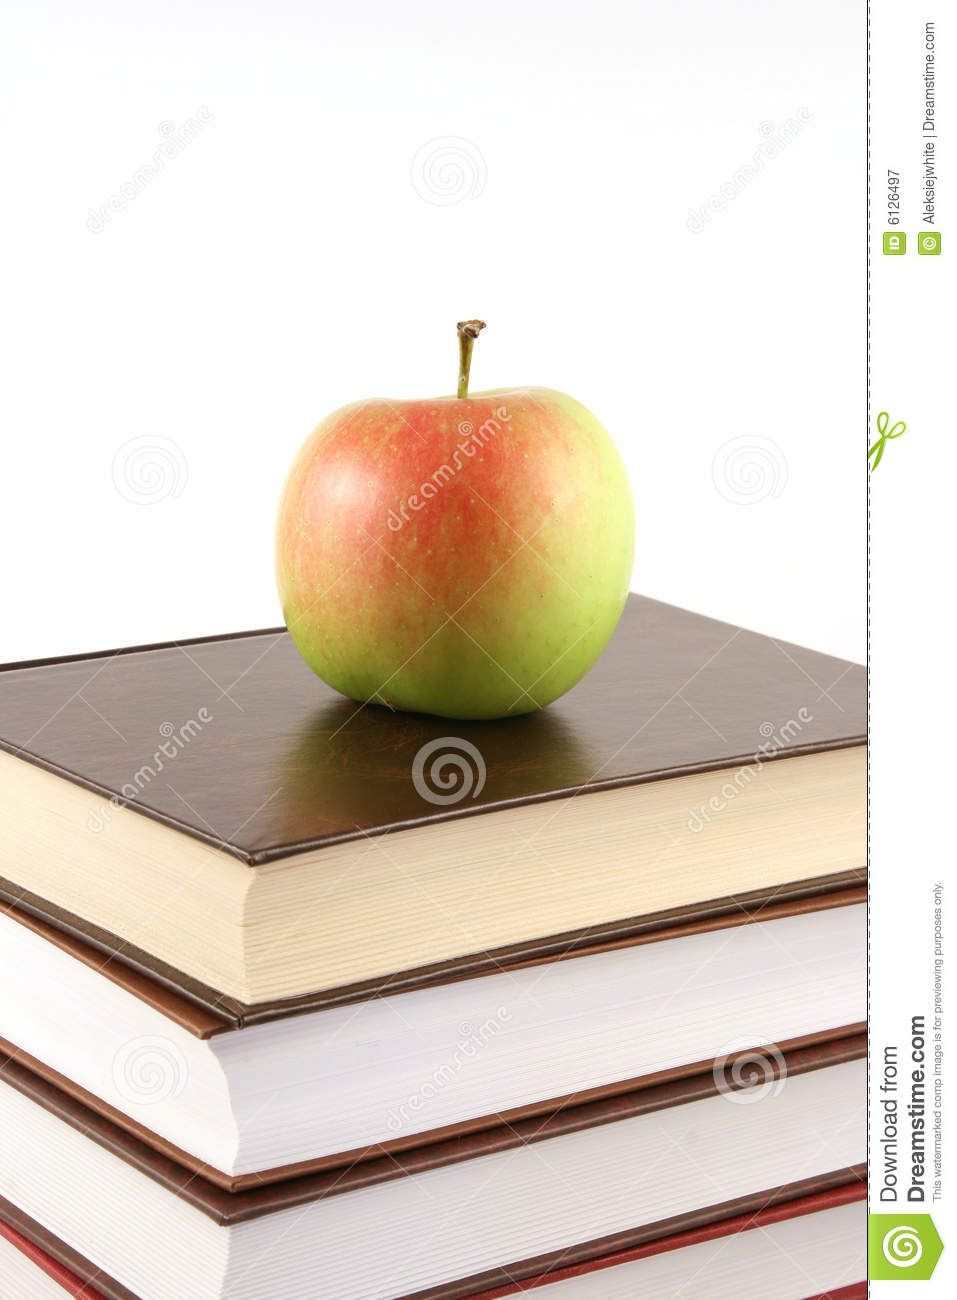 Books pyramid with apple on top